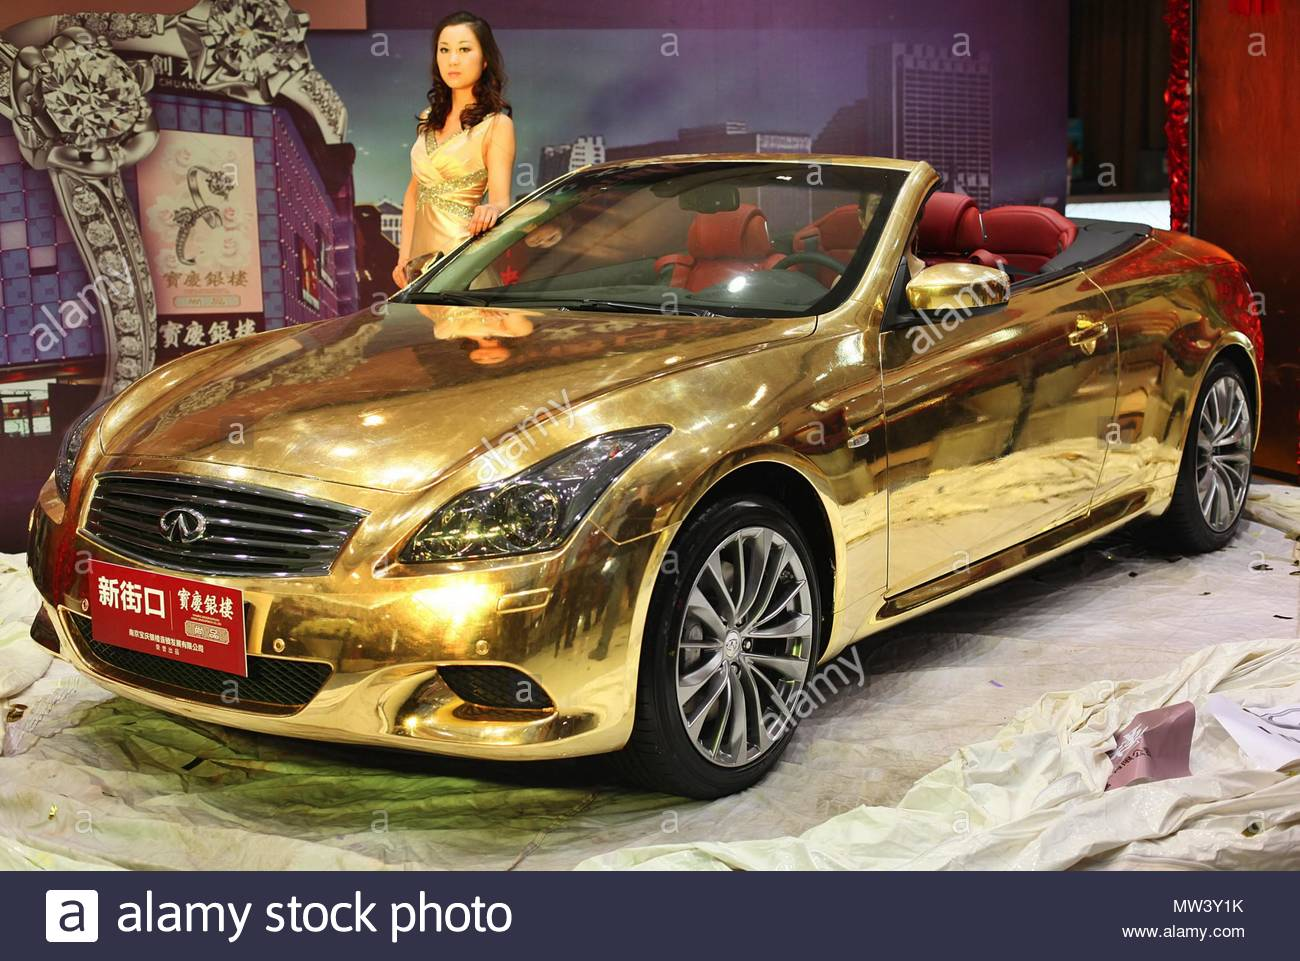 Gold Car This Gold Plated Sports Car Is The Ultimate Pimped Out